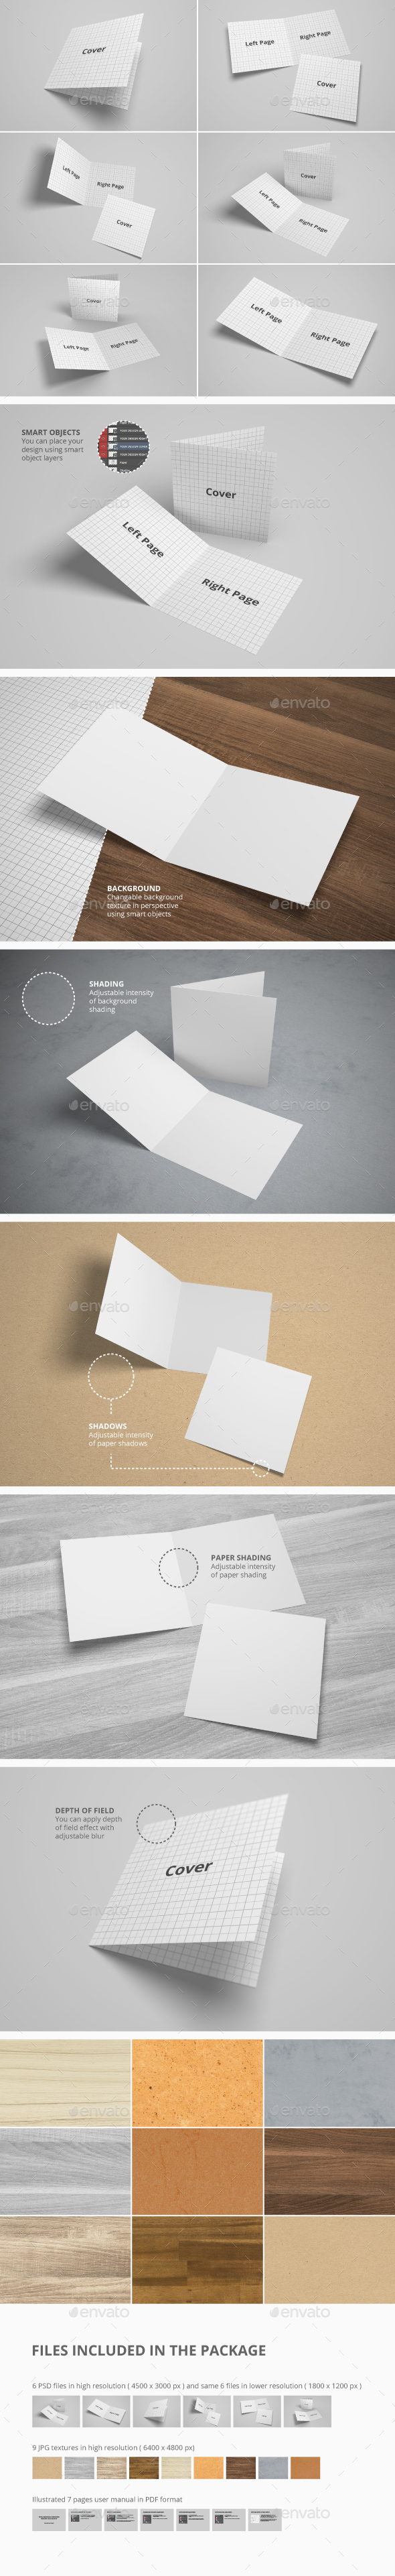 Bifold Brochure / Invitation / Greeting Card Mock-Up - Brochures Print